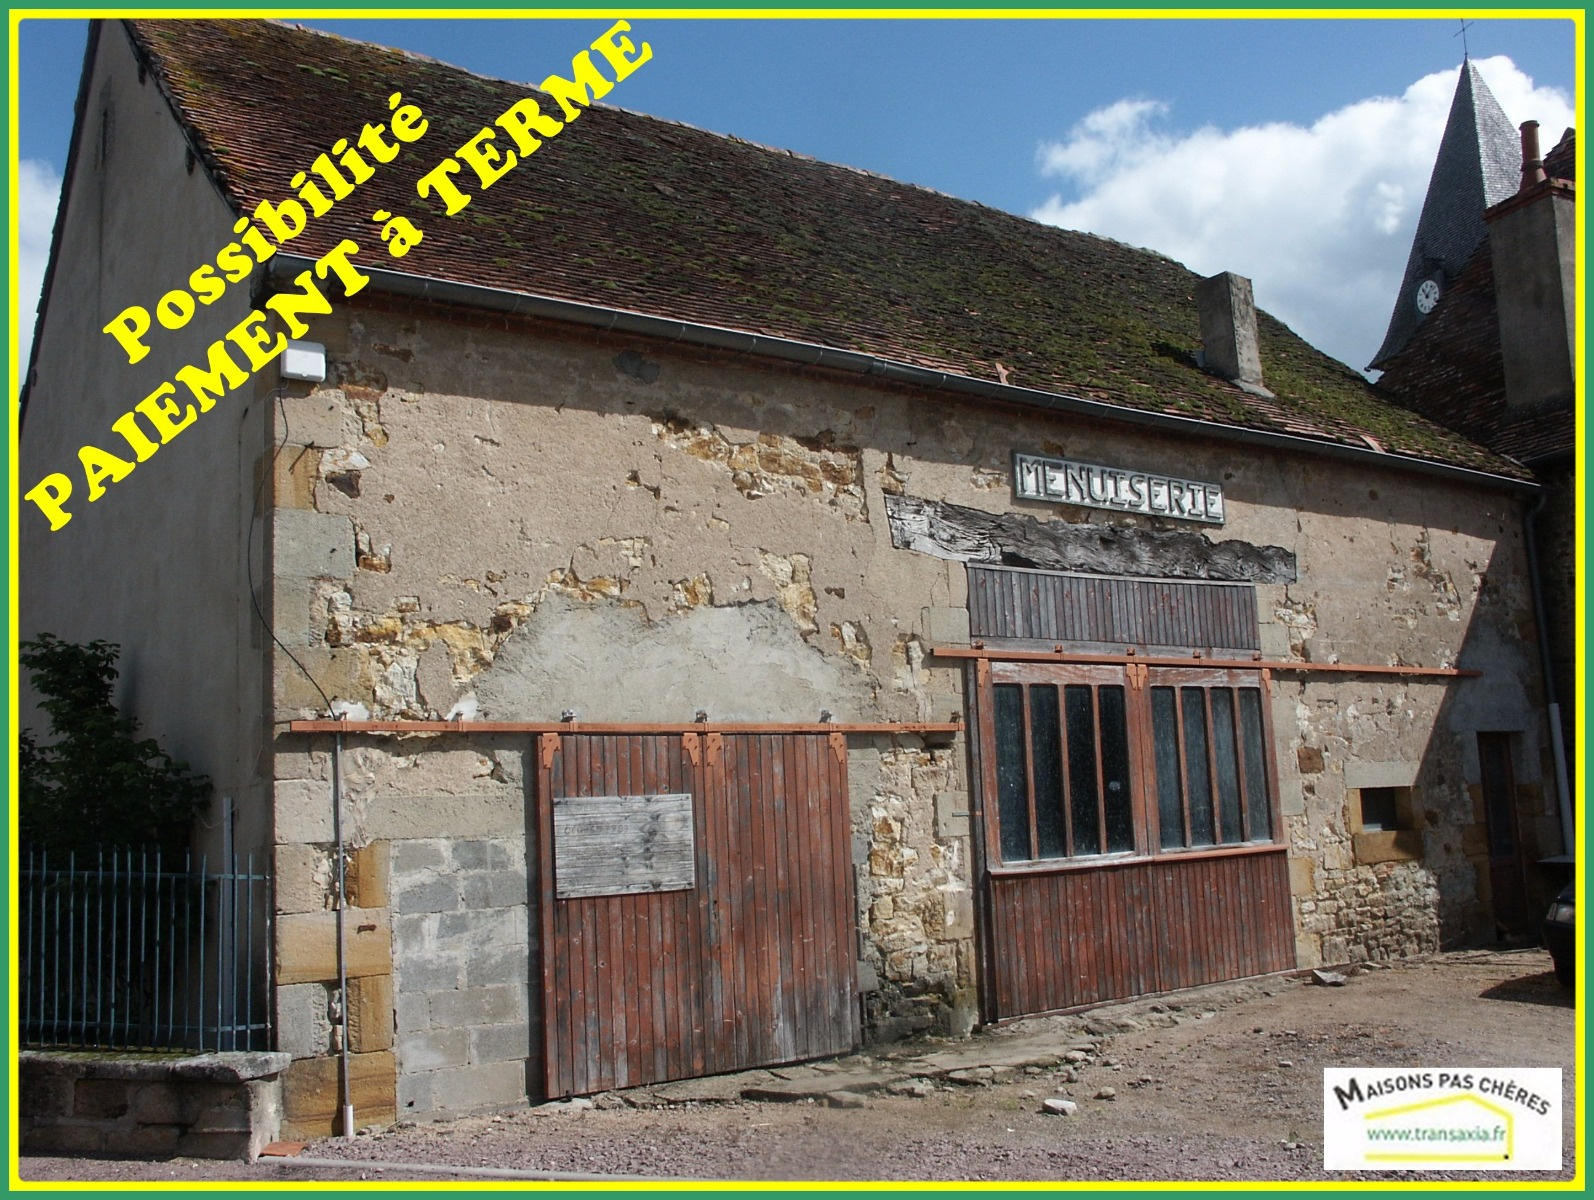 Vente garage parking montlu on 03100 sur le partenaire for Vente garage parking angers